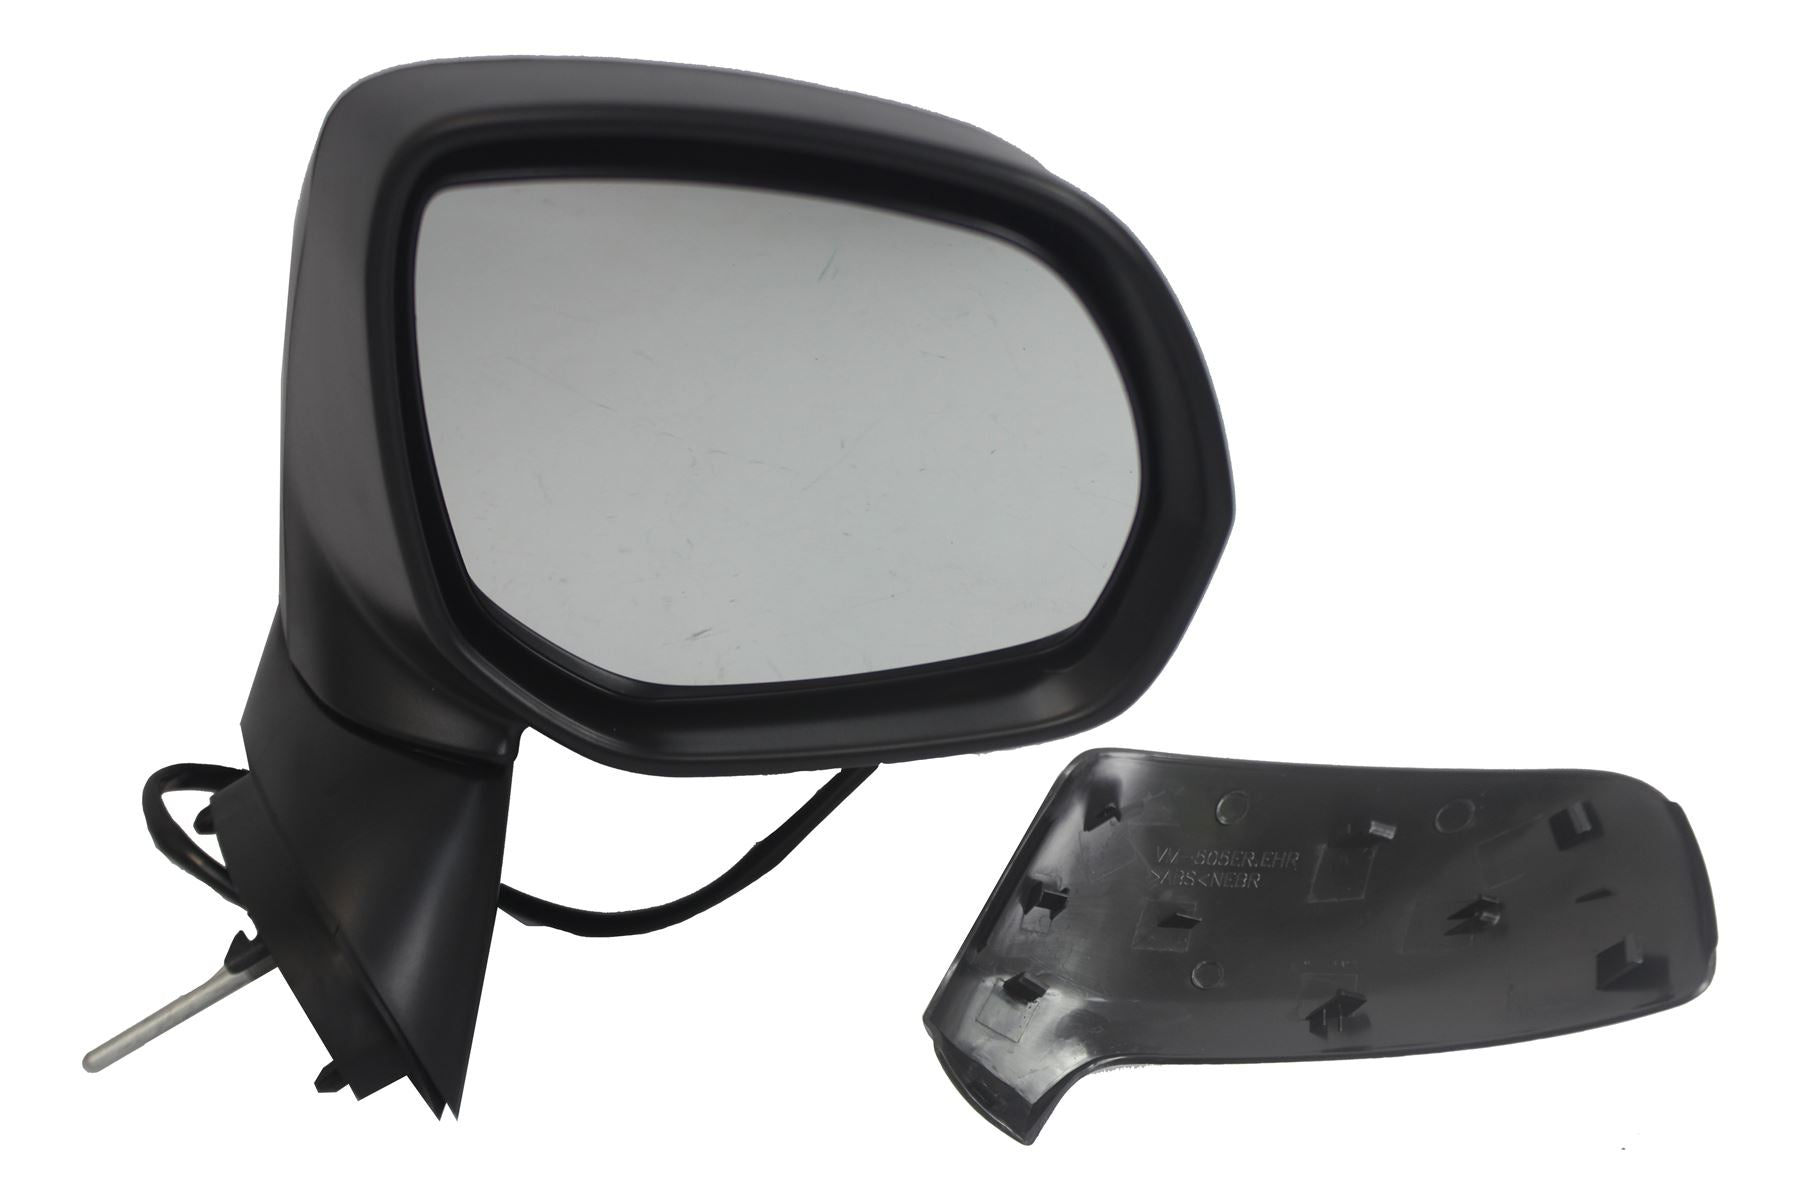 Citroen C3 Picasso 2009+ Electric Wing Mirror Black Temp Sensor Drivers Side